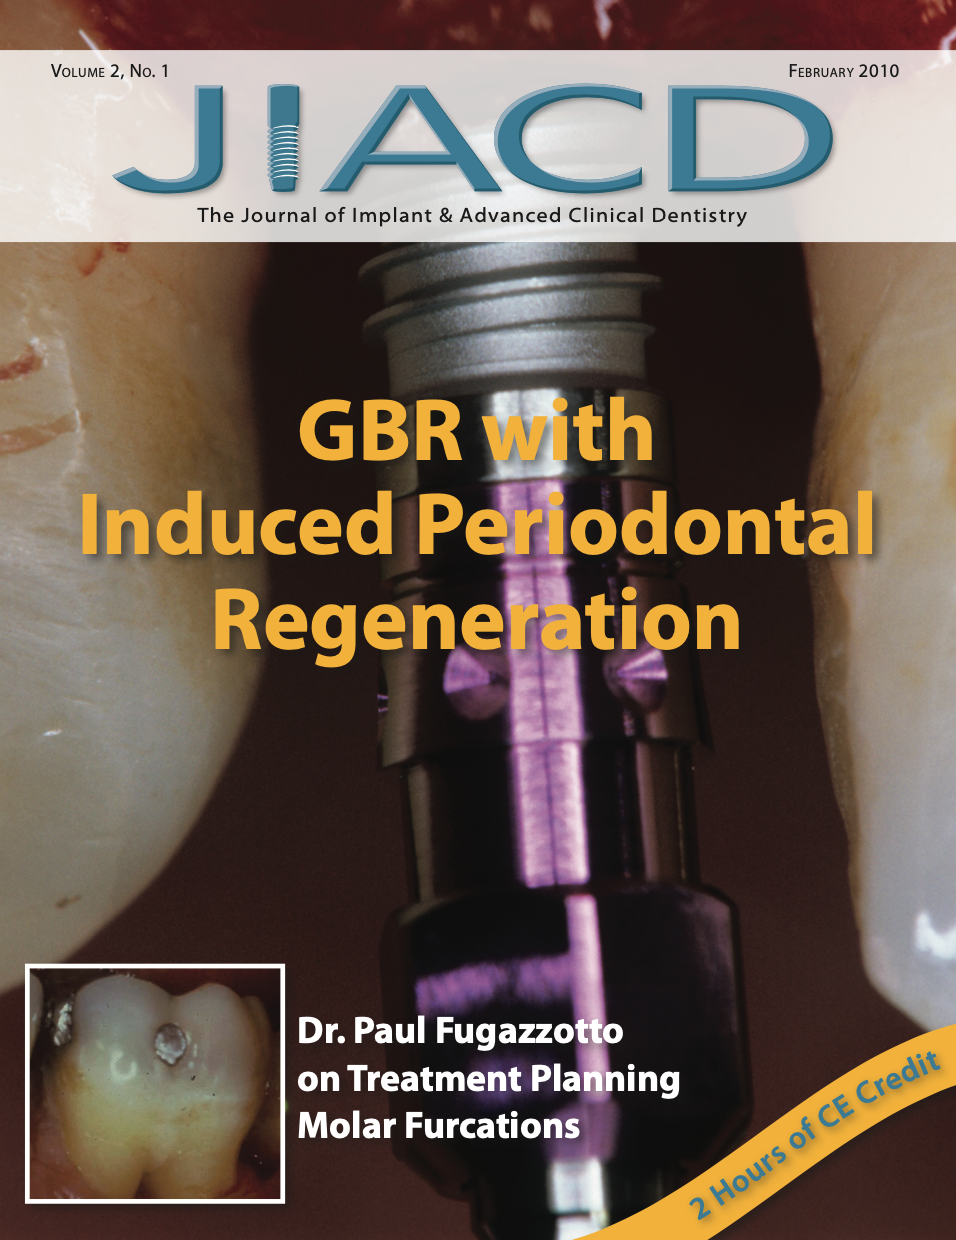 GBR with Induced Periodontal Regeneration